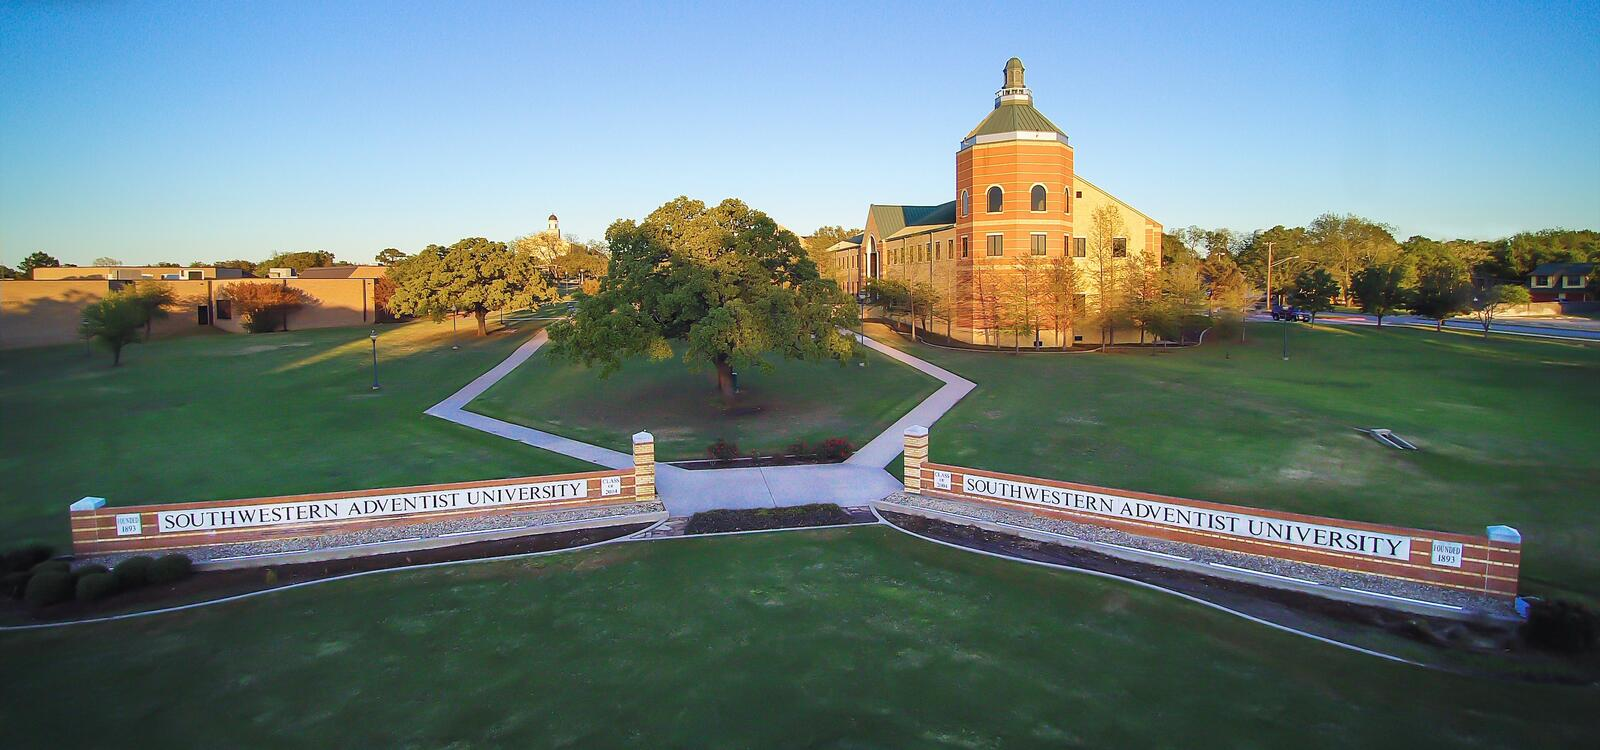 """Birdseye view of the university, showcasing the Pechero building and two matching brick signs that read """" Southwestern Adventist University"""""""